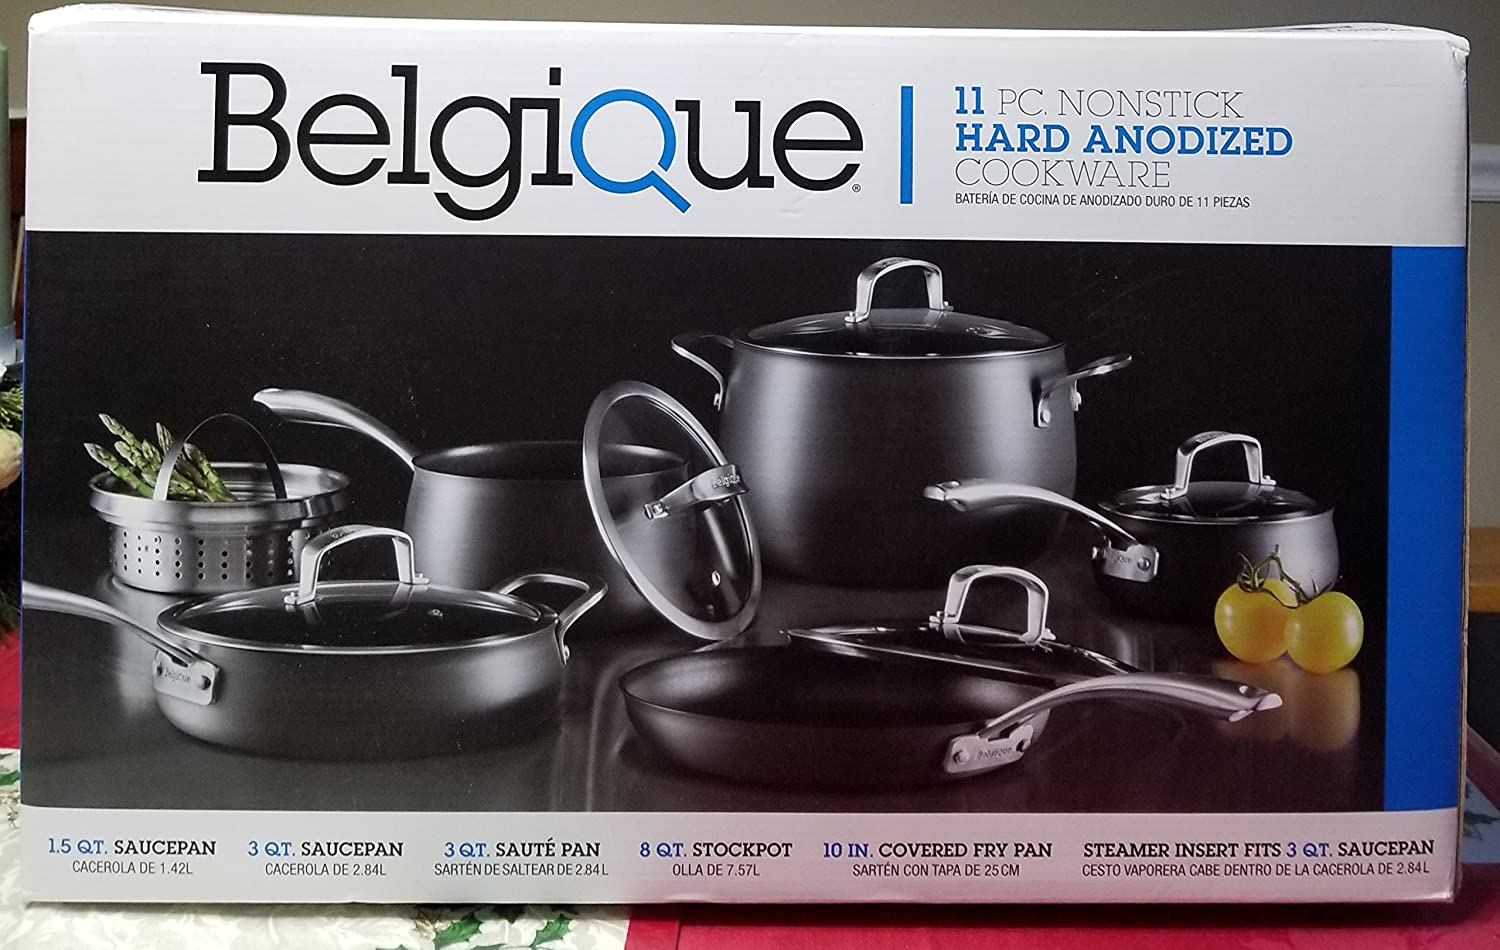 Amazon.com : Belgique 11 PC NONSTICK HARD ANODIZED COOKWARE GREY : Everything Else